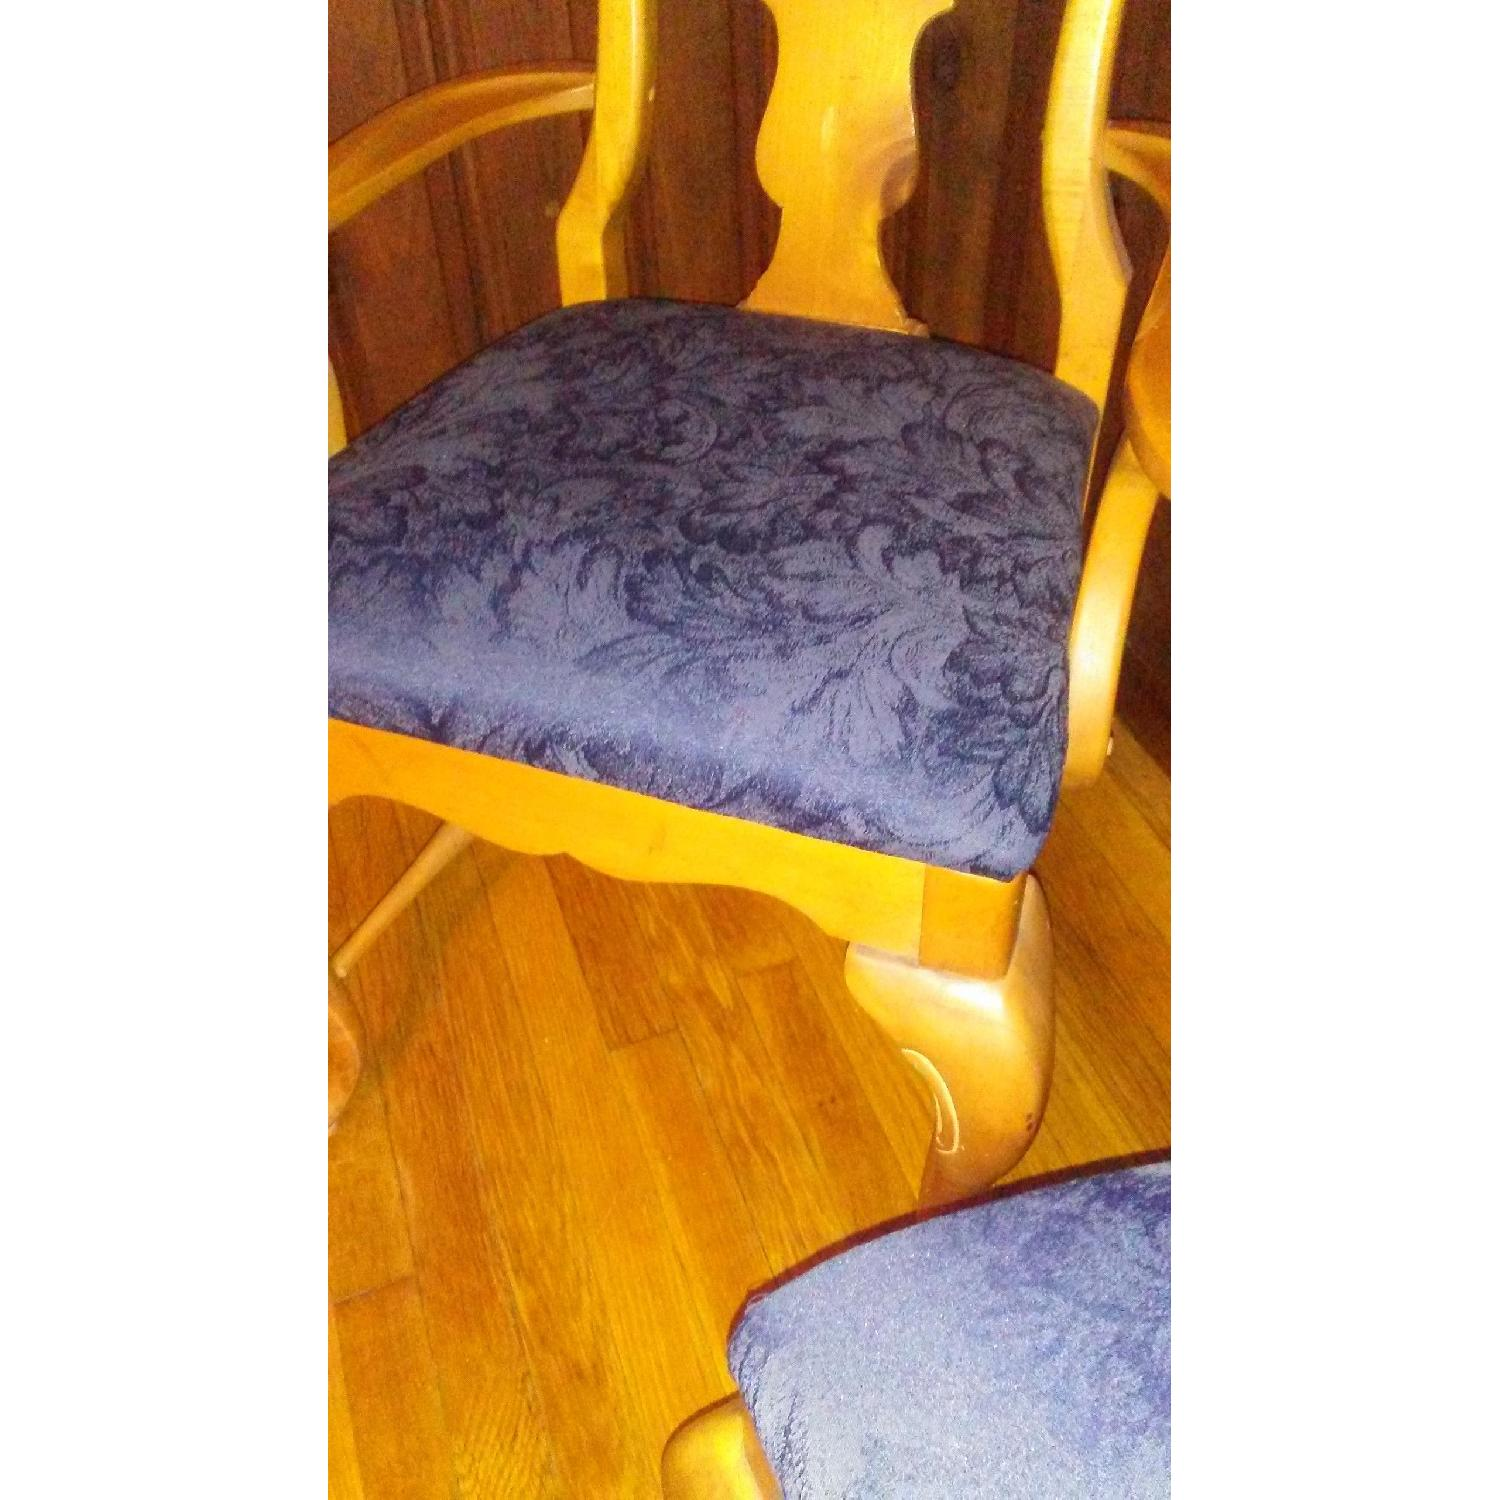 ... Thomasville Dining Room Chair 1 ...